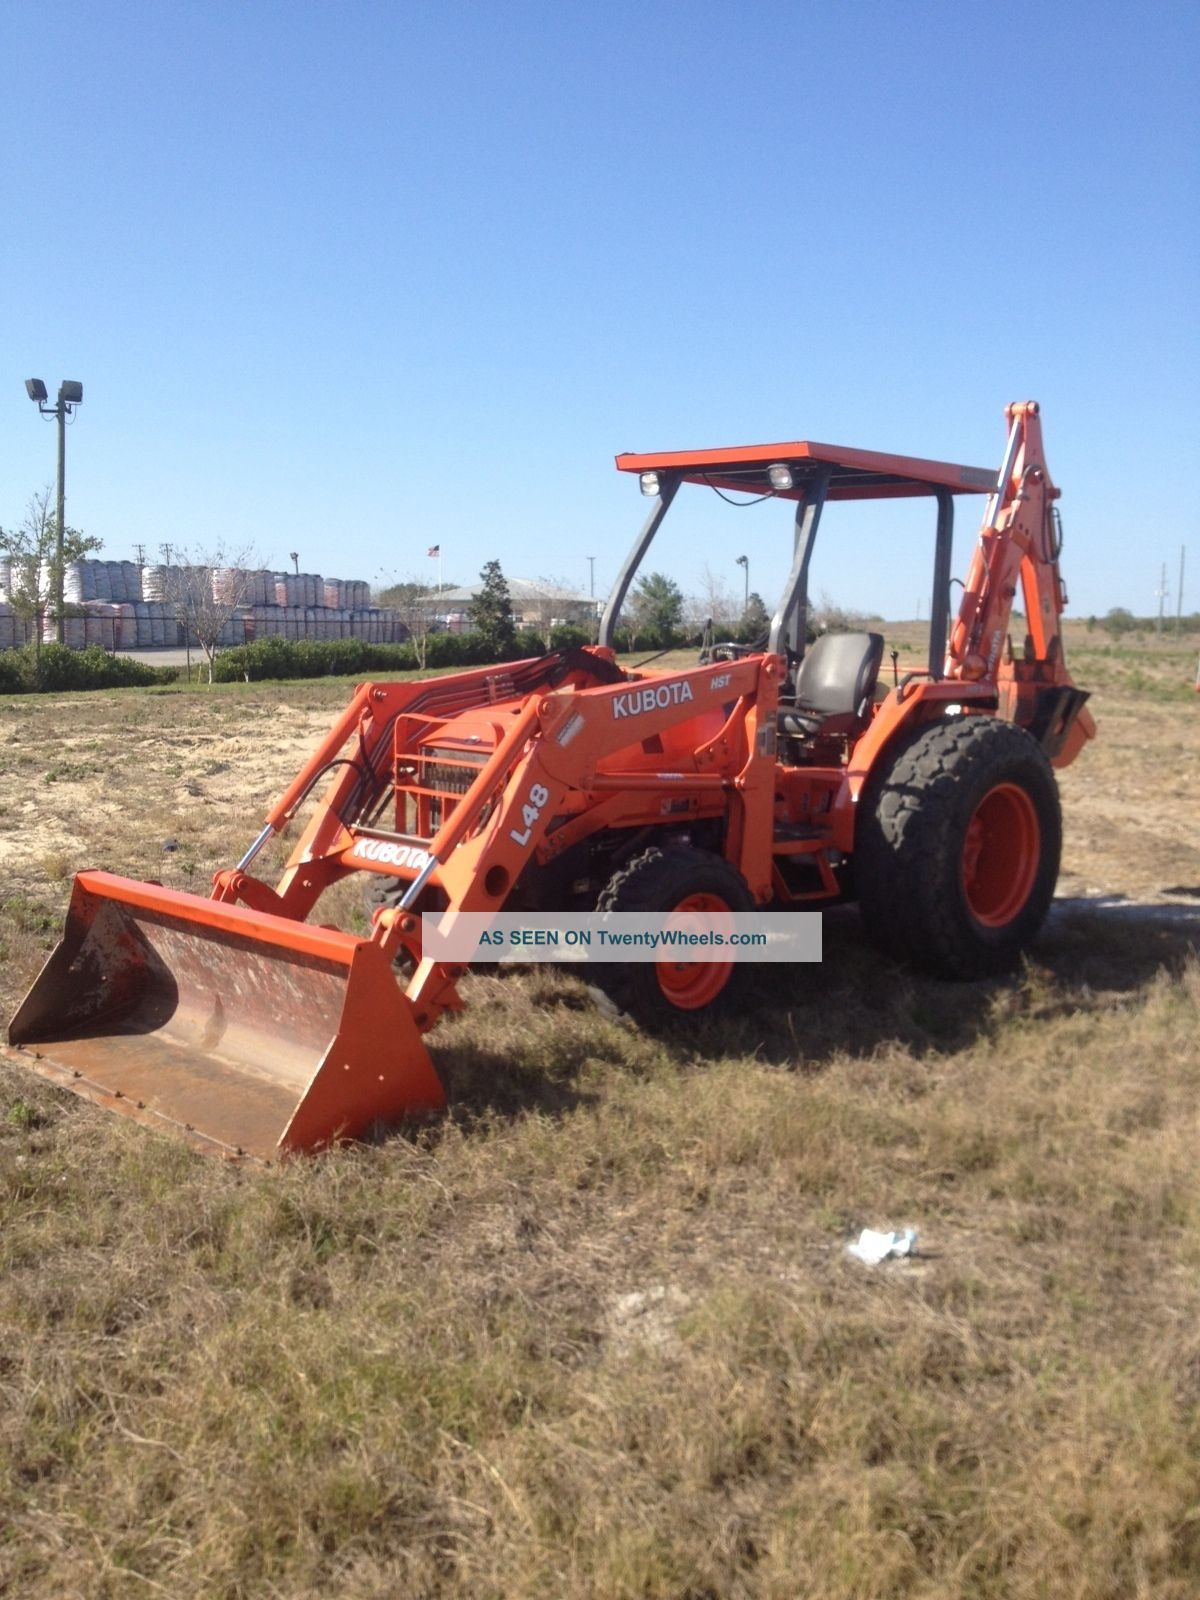 Kubota L48 Backhoe Loader Tractor 4x4 Three Point Hitch Diesel Hoe Rubber Tire Tractors photo